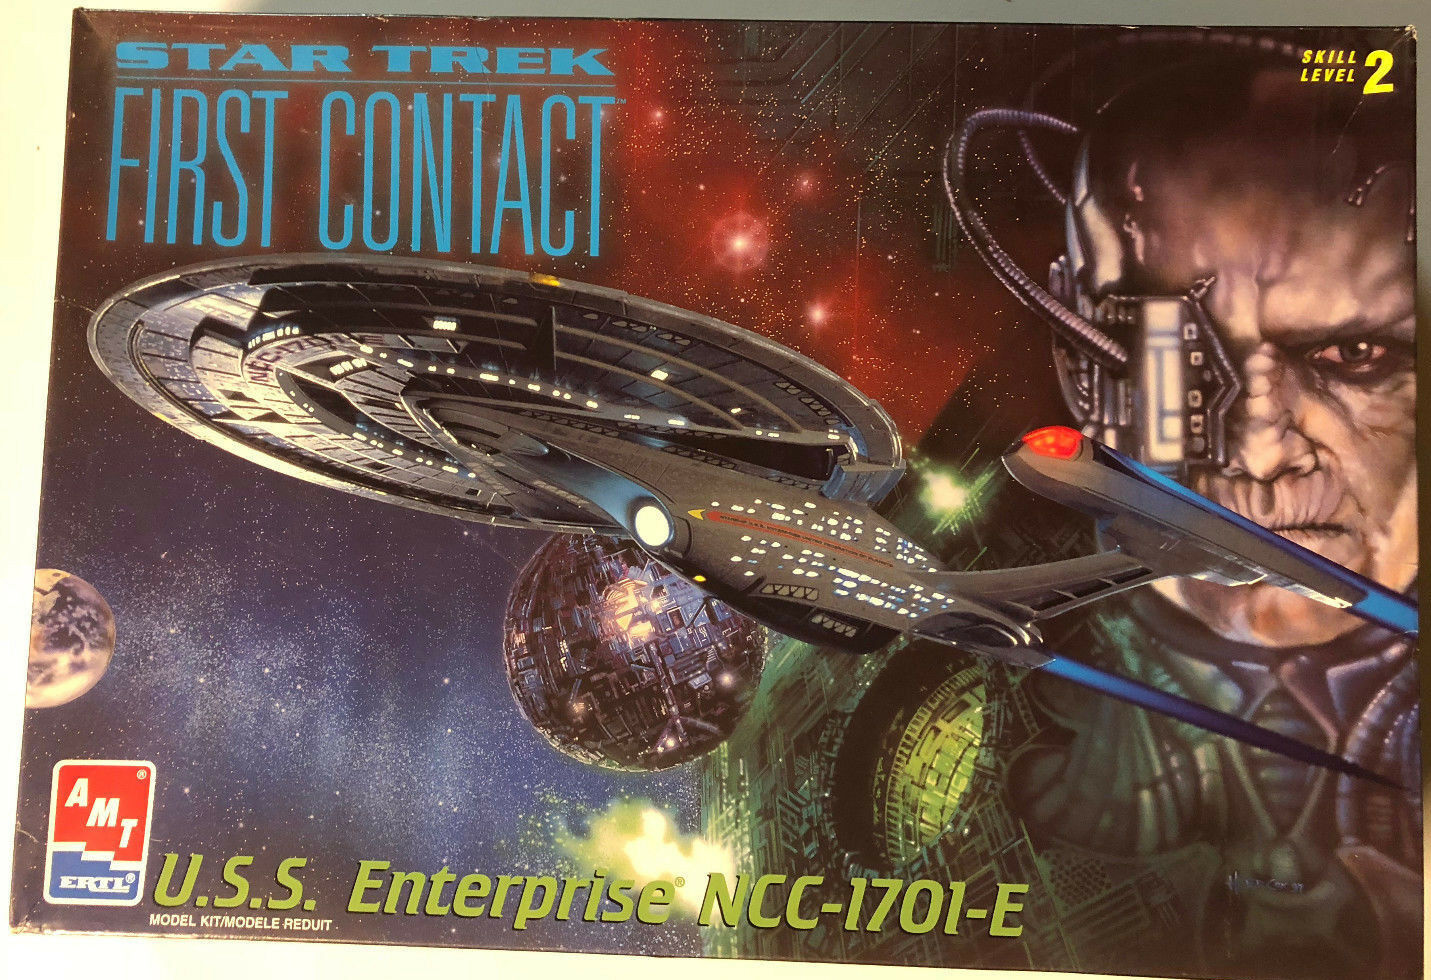 Star Trek Enterprise E First Contact AMT ERTL Model